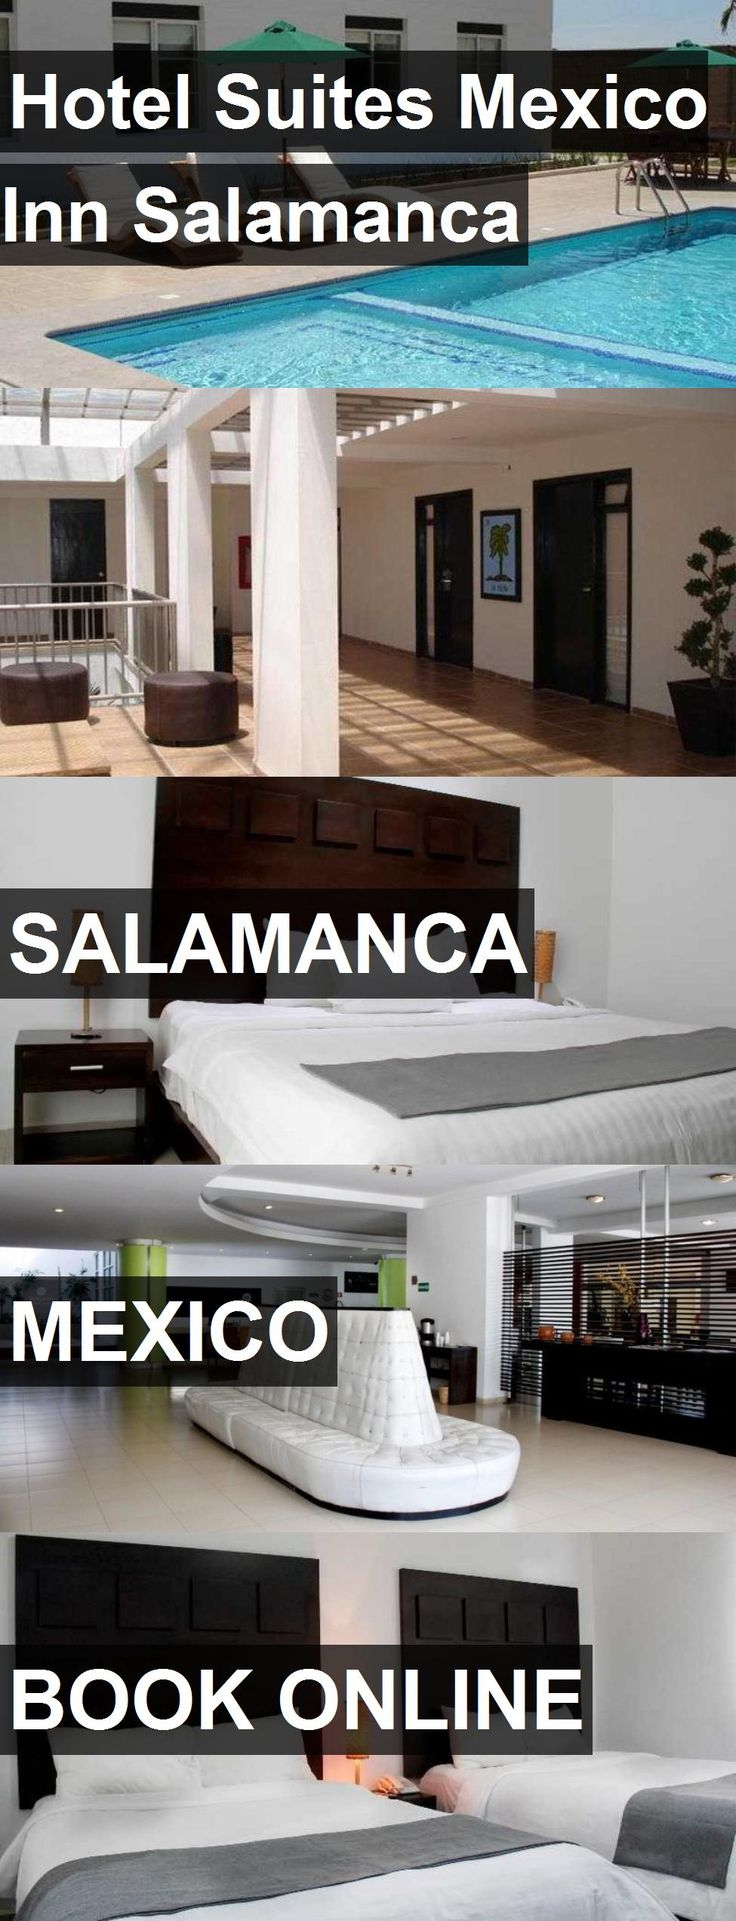 Hotel Suites Mexico Inn Salamanca in Salamanca, Mexico. For more information, photos, reviews and best prices please follow the link. #Mexico #Salamanca #travel #vacation #hotel